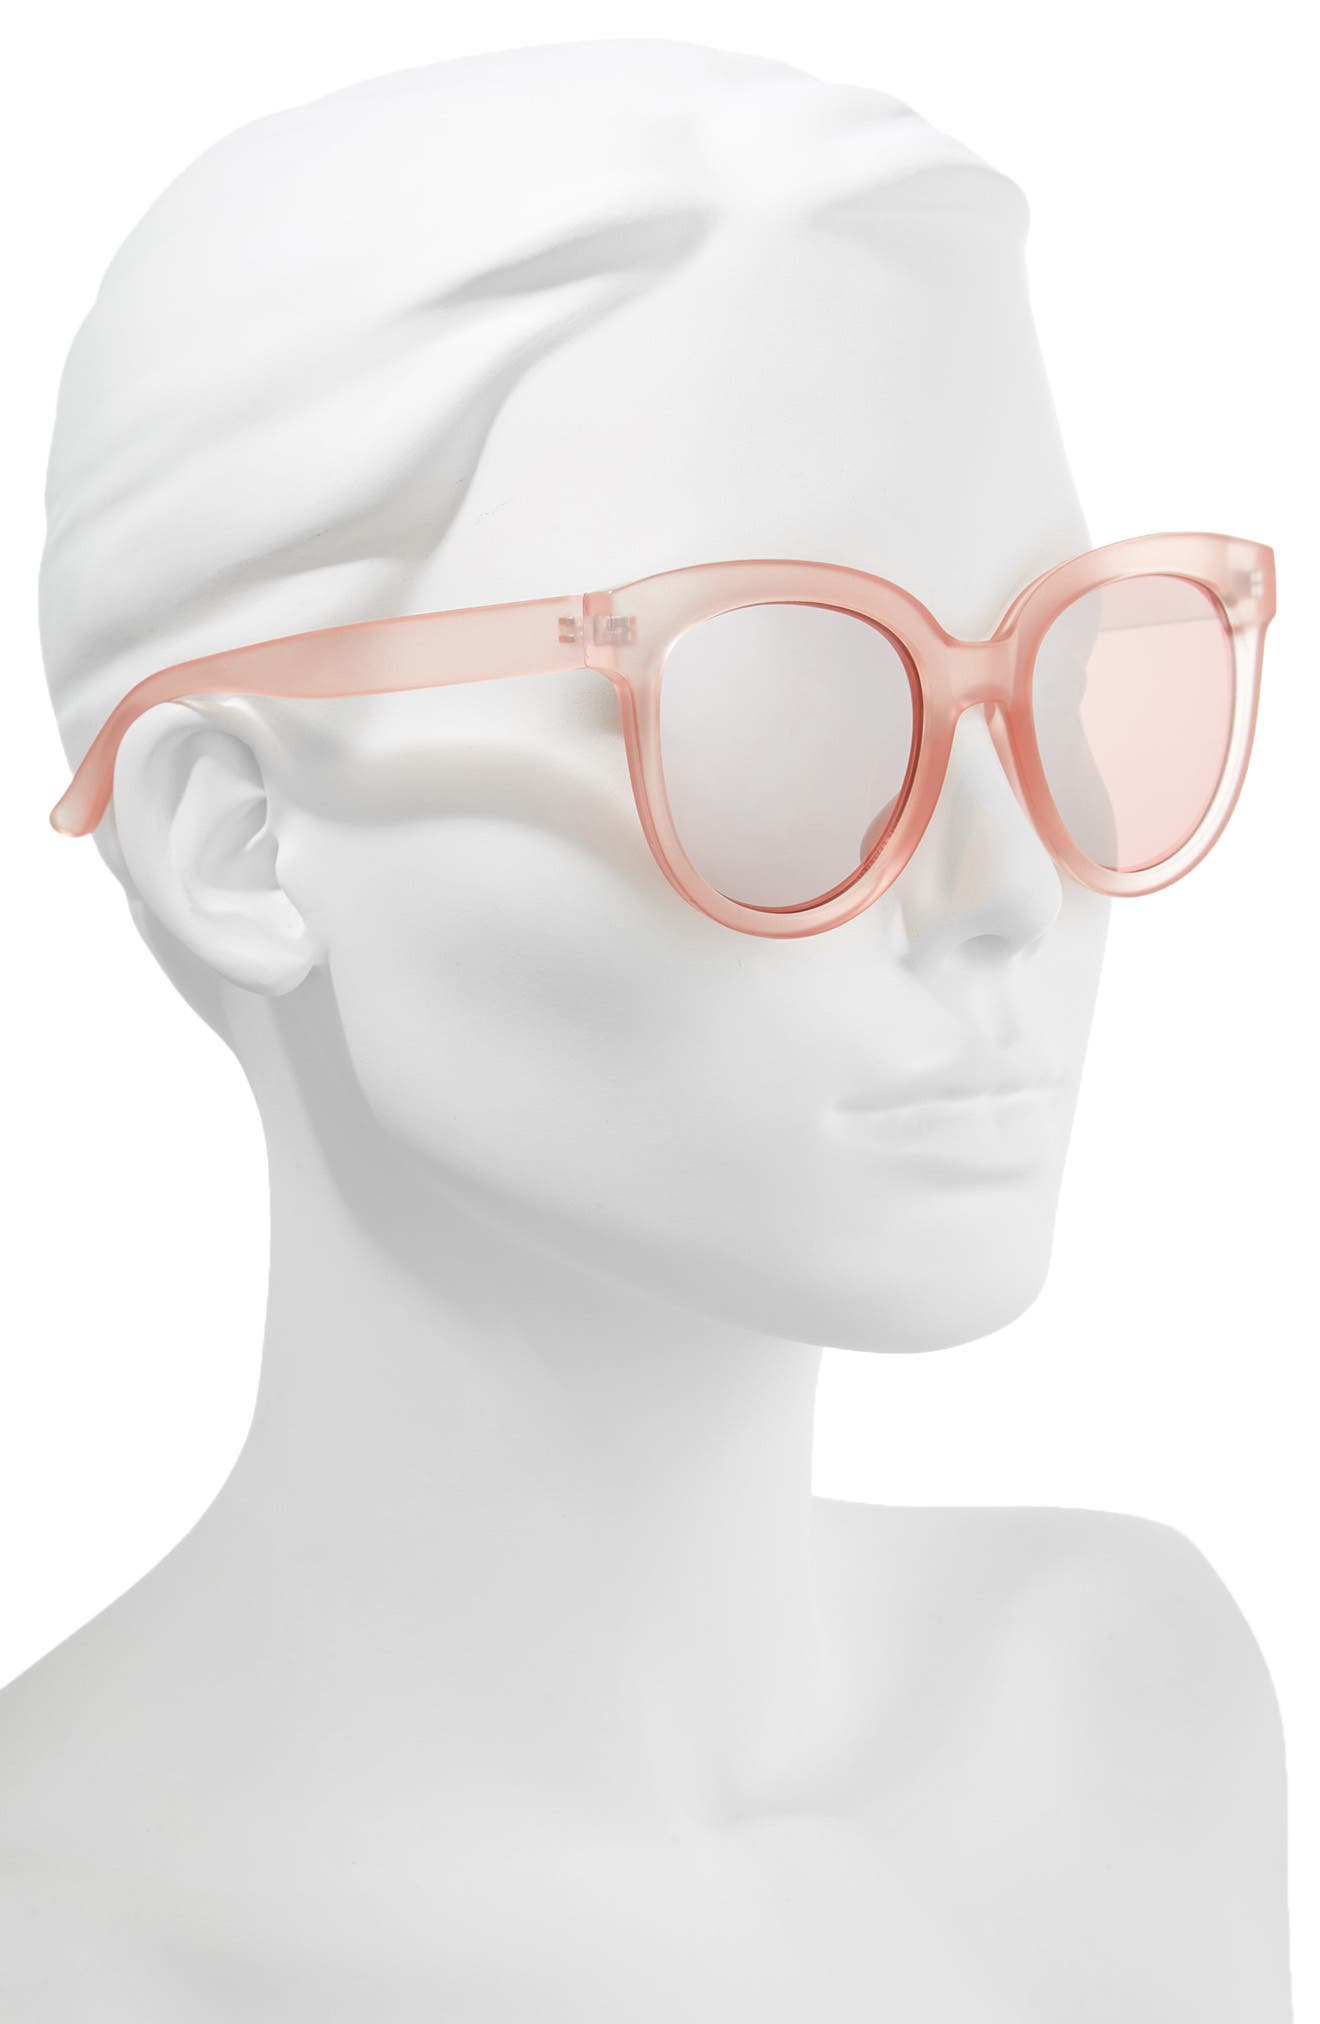 53mm Frosted Cat Eye Sunglasses,                             Alternate thumbnail 2, color,                             MILKY PINK/ ROSE GOLD